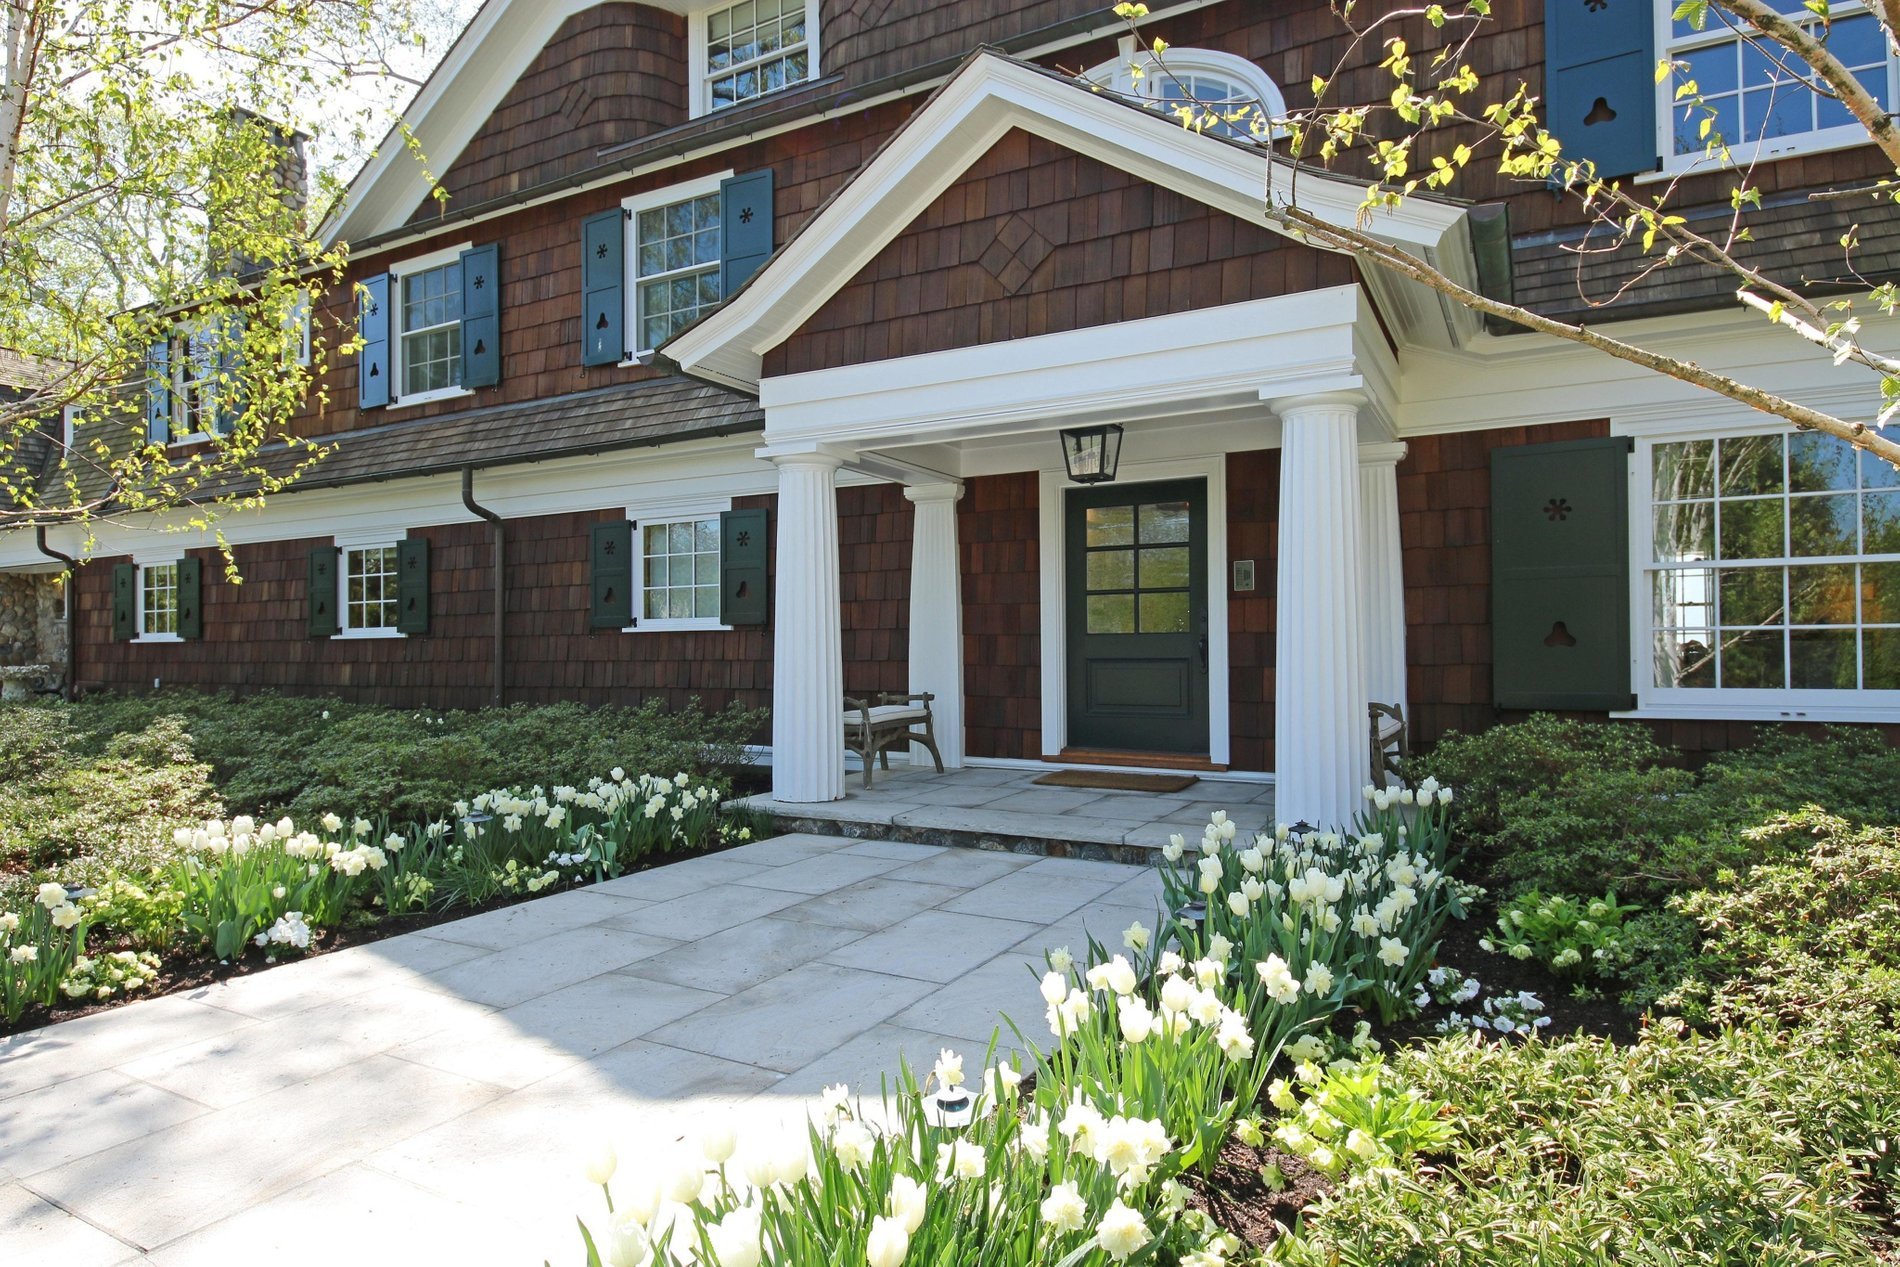 Shingle style a-frame portico with 4 round tapered and fluted columns.